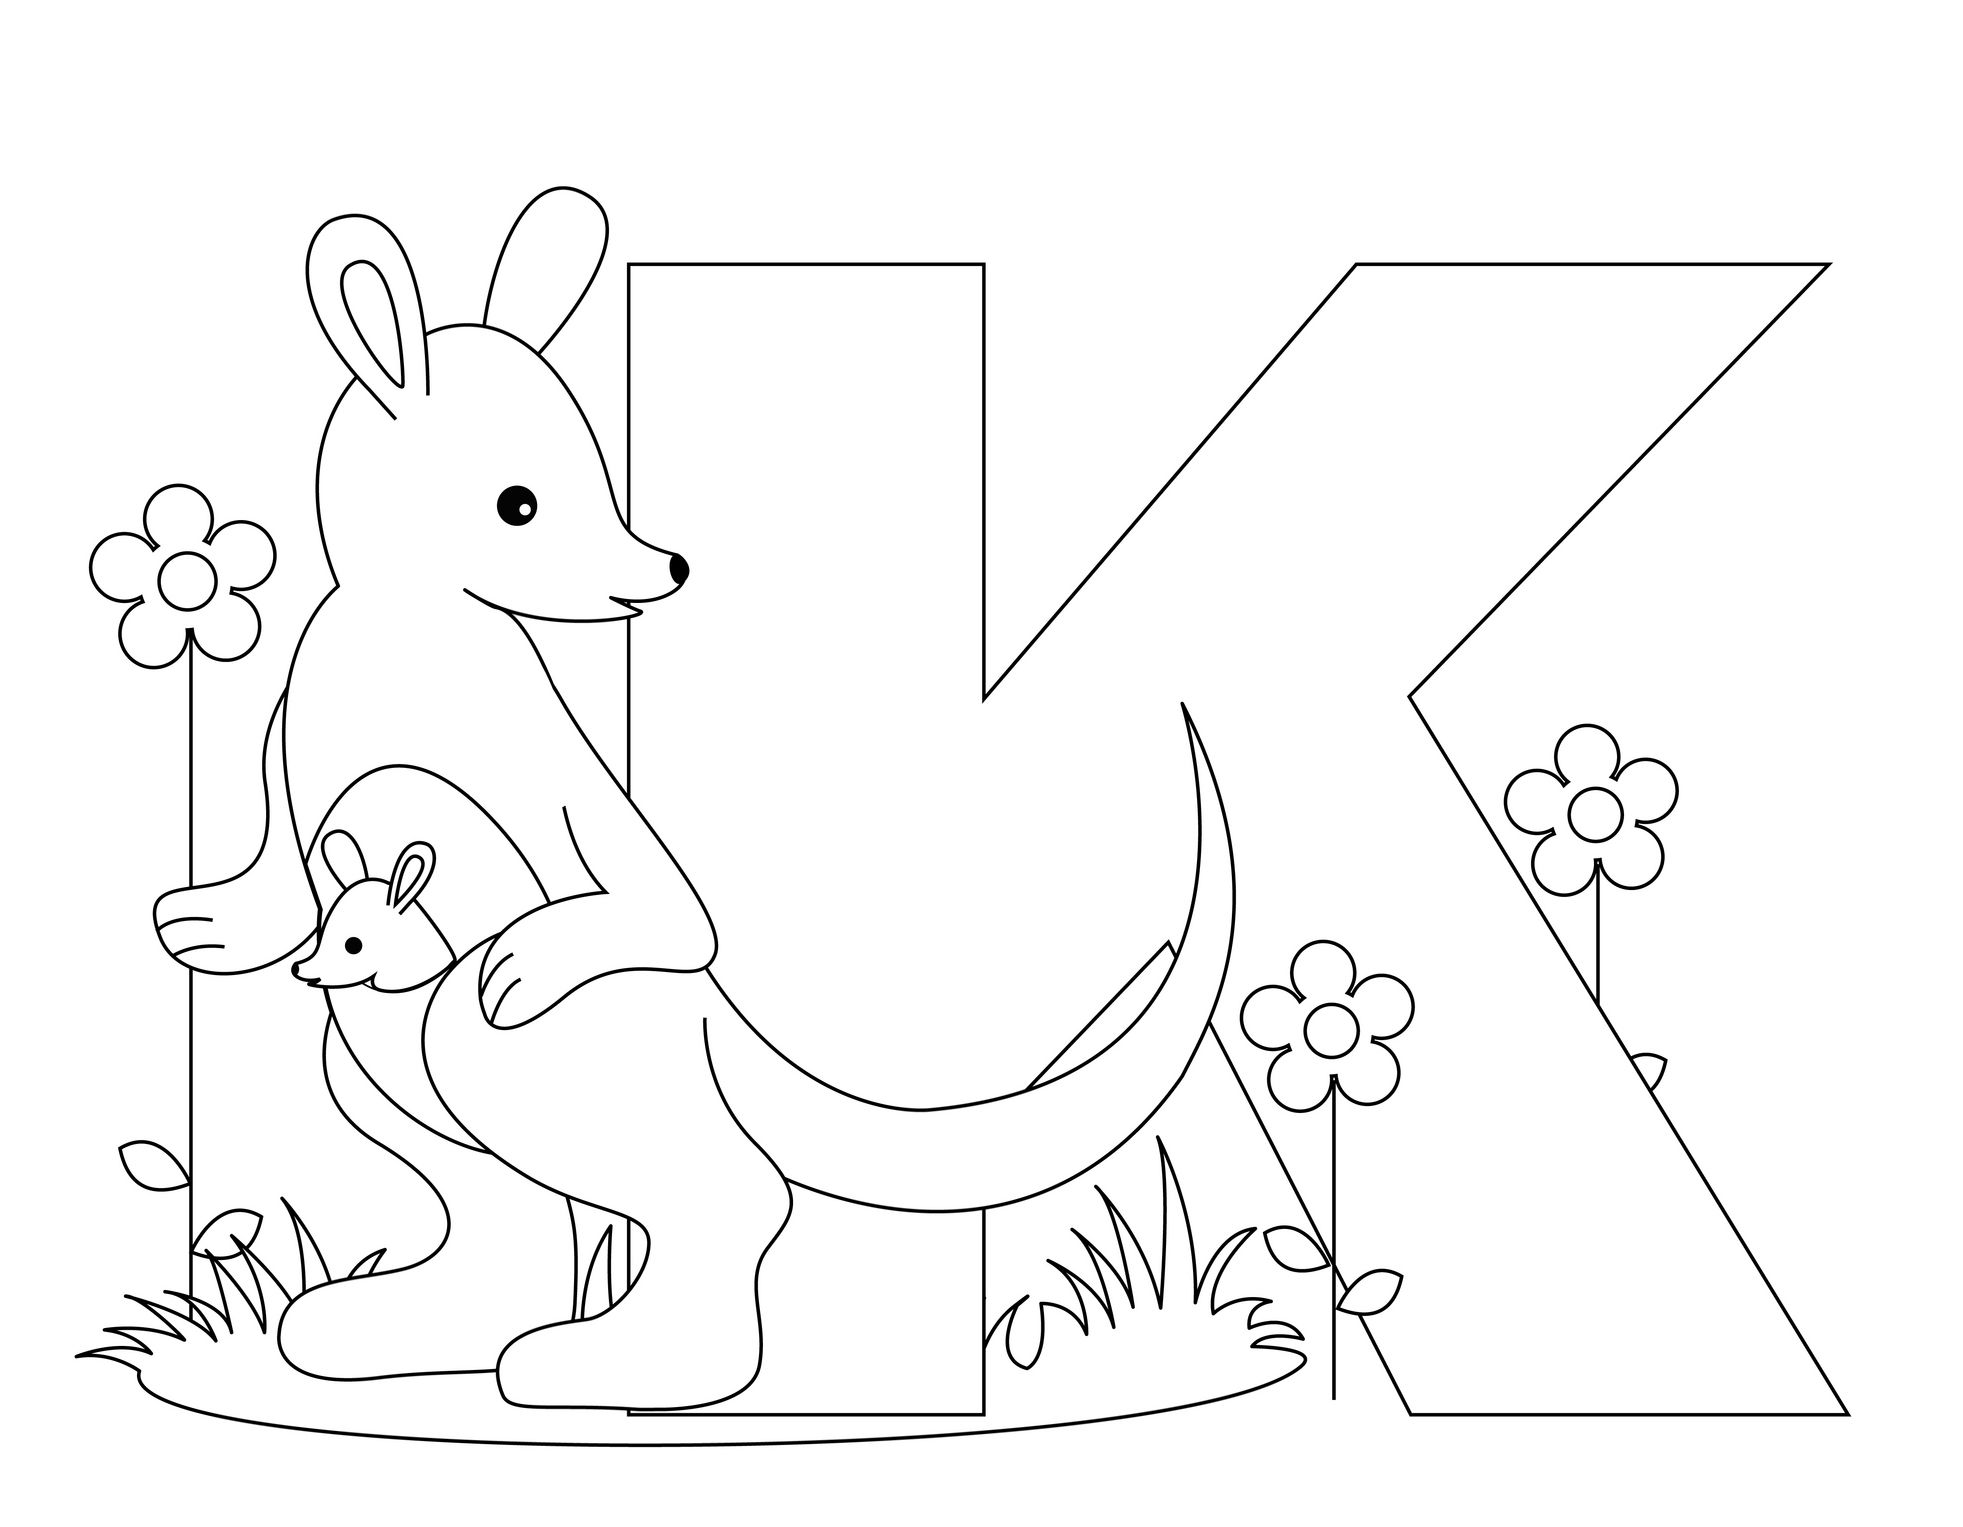 Free Kindergarten Alphabet Worksheets – Free Printable Alphabet Worksheets for Kindergarten